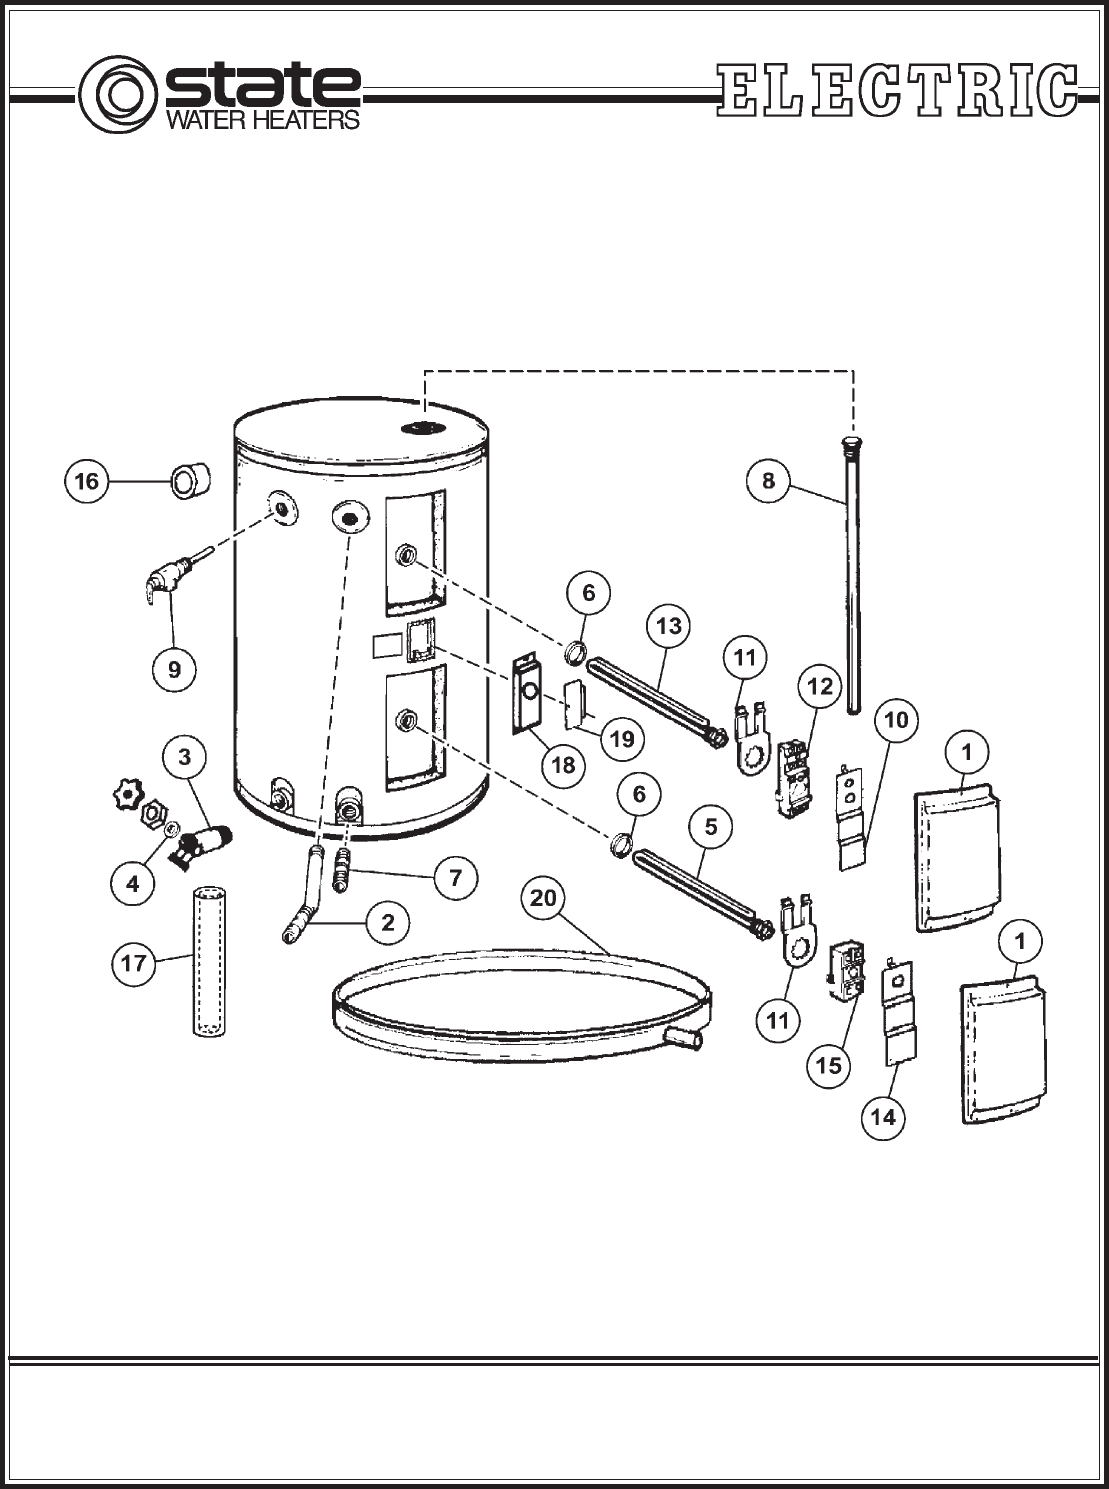 wiring diagram for a whirlpool hot water heater with Kenmore Electric Water Heater Wiring Diagram on Thermostat Wiring Schematics likewise Whirlpool Electric Water Heater Wiring Diagram in addition 1081000 further Kenmore Electric Water Heater Wiring Diagram further Maytag Repair Schematic.